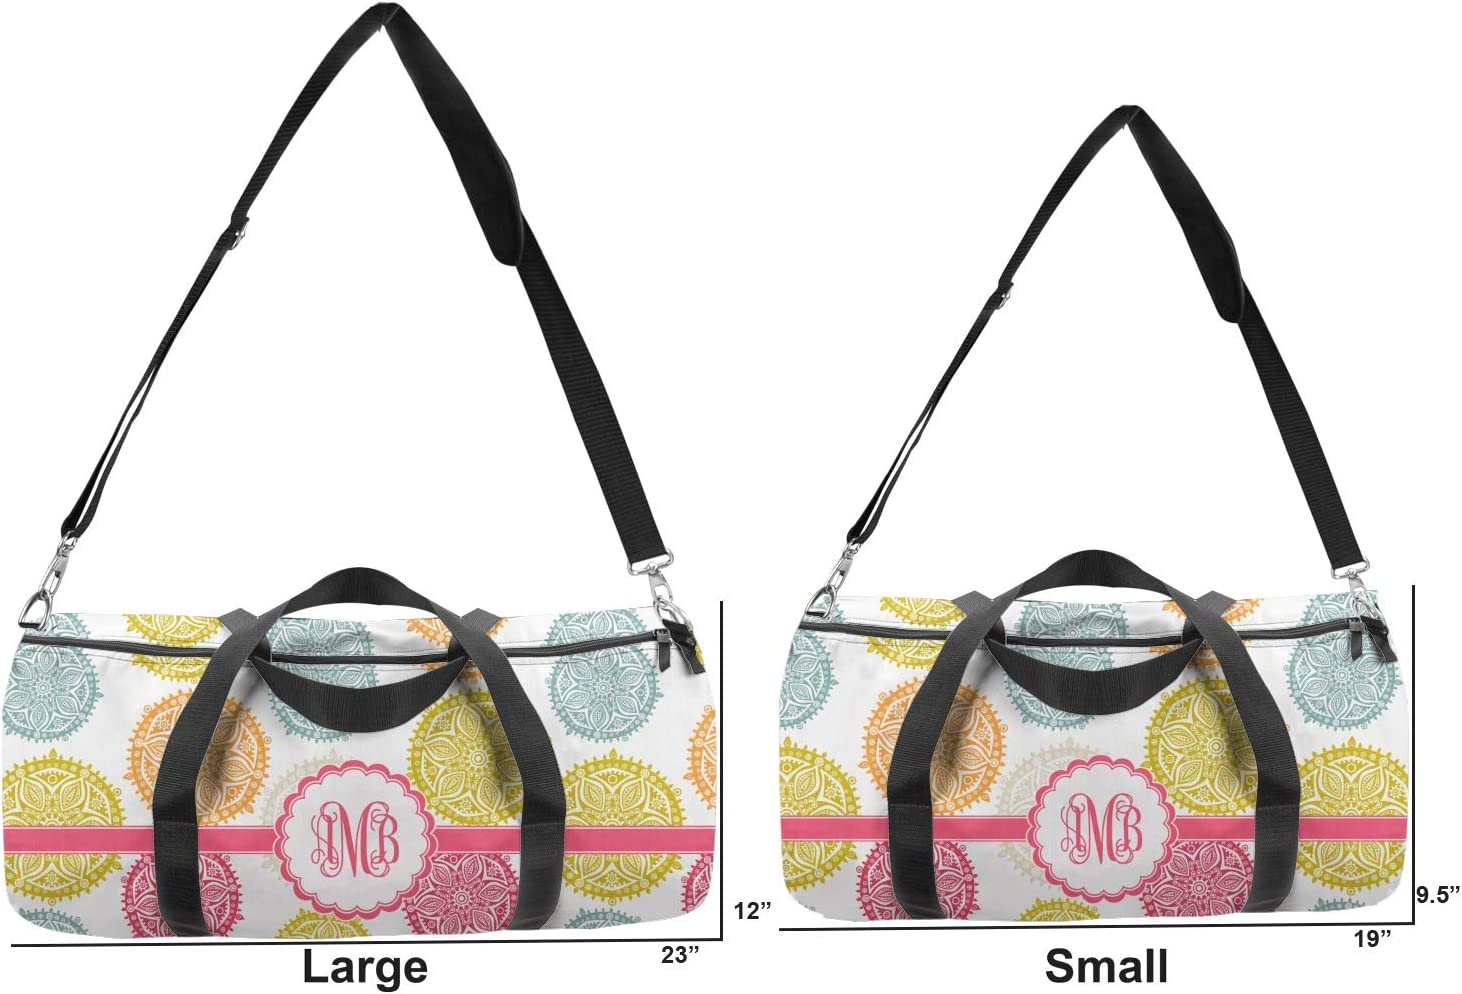 Personalized YouCustomizeIt Doily Pattern Duffel Bag